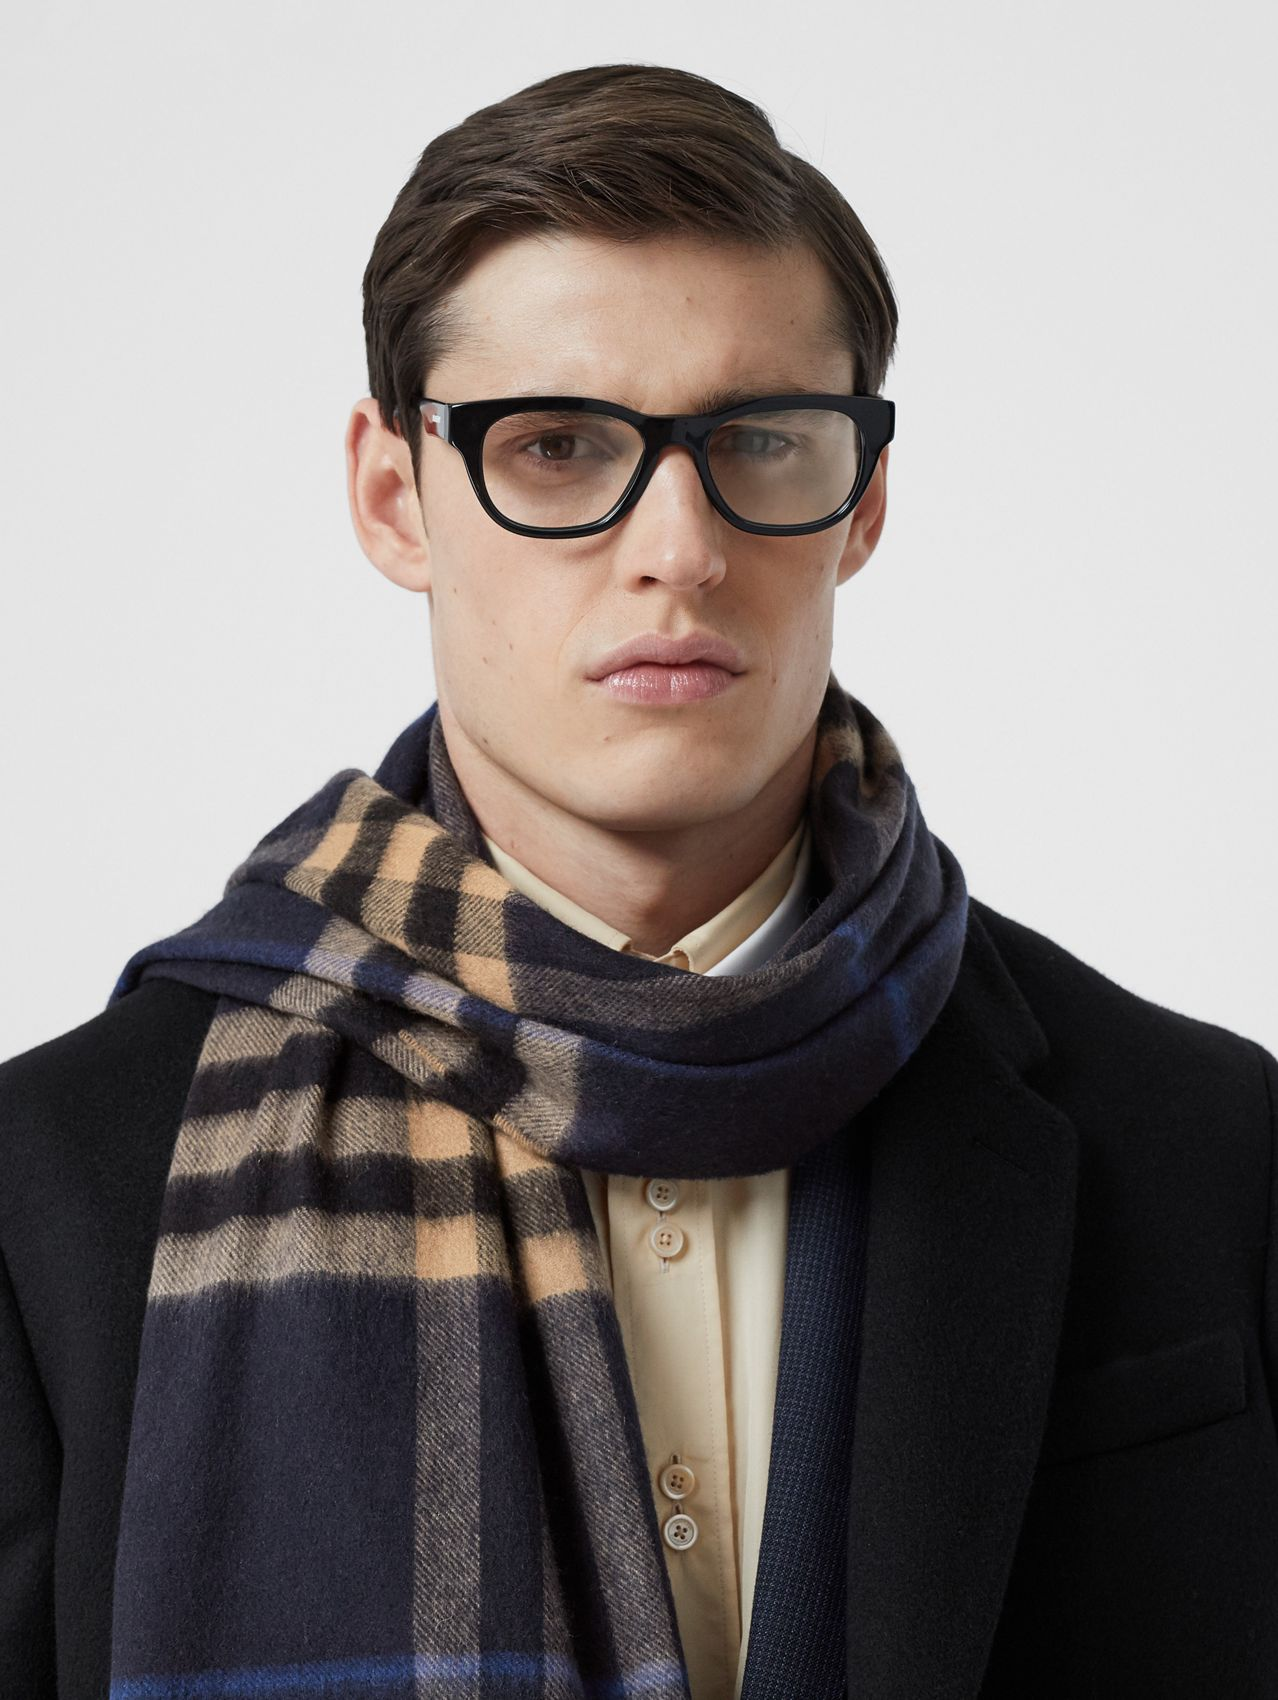 The Classic Check Cashmere Scarf in Indigo / Mid Camel